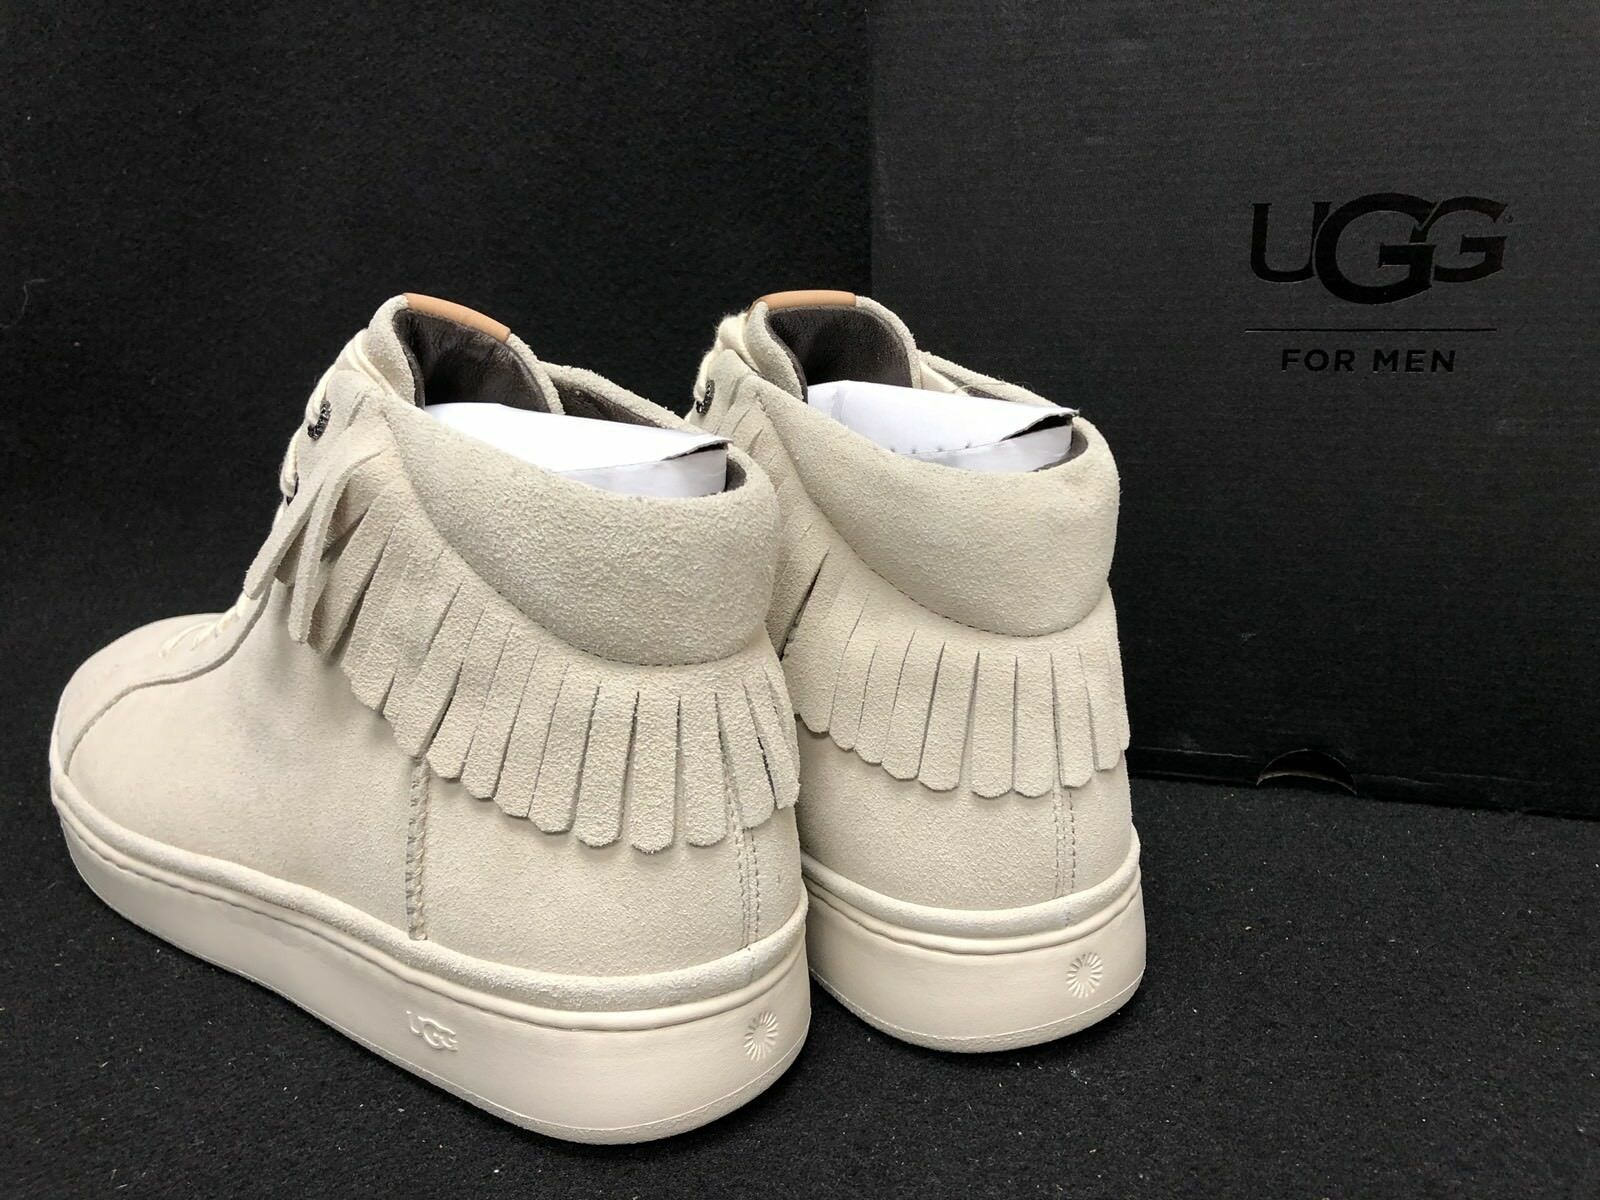 Ugg Australia Cali Sneaker High Fringe White Cap Shoes 1020137 High Top Suede